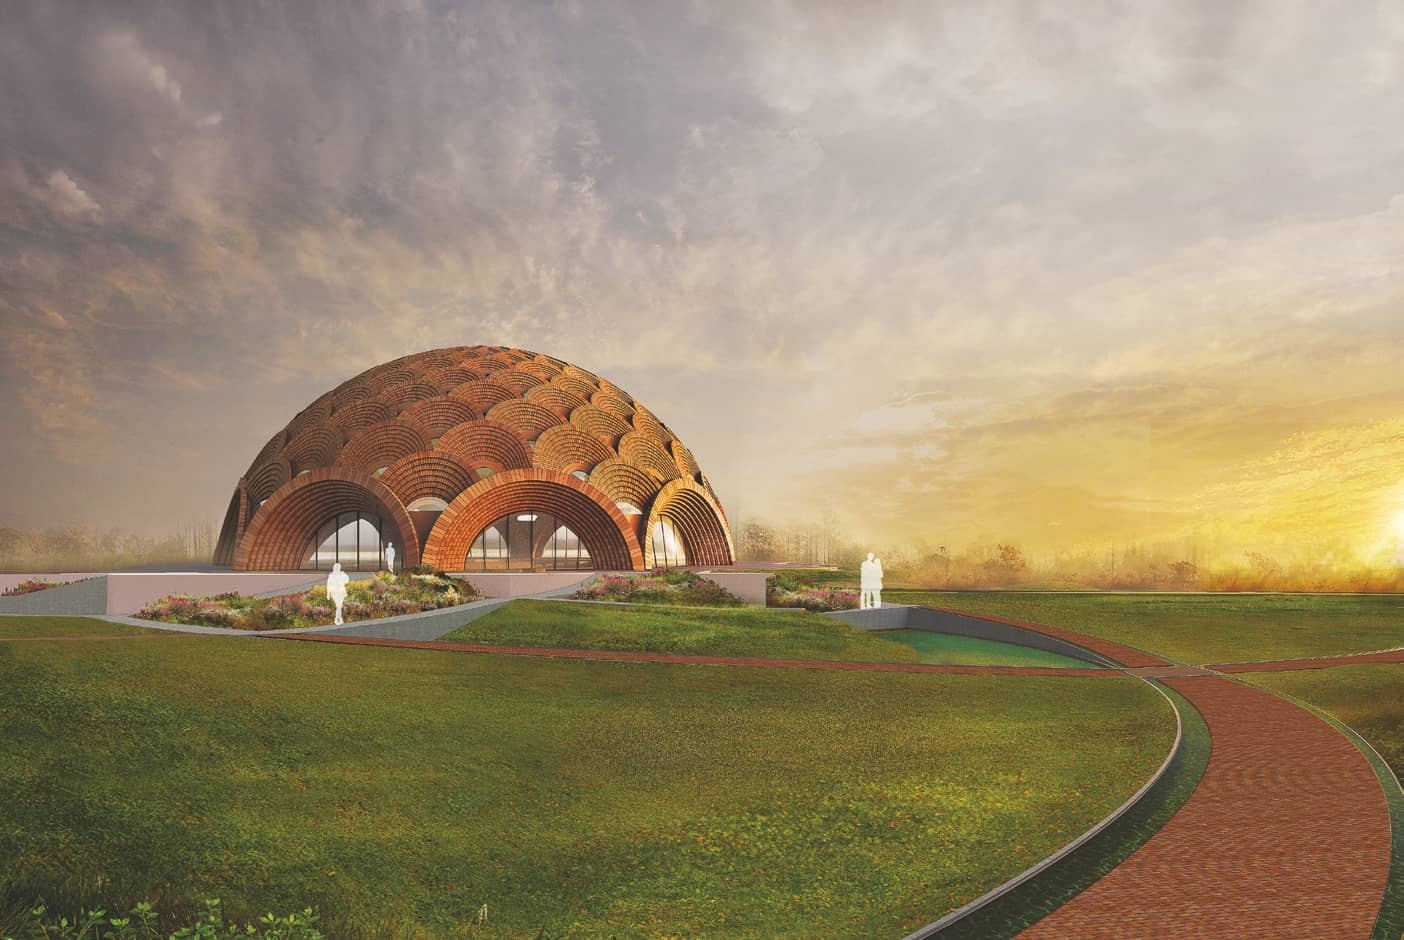 Design unveiled for Baha'i House of Worship located in Bihar Sharif